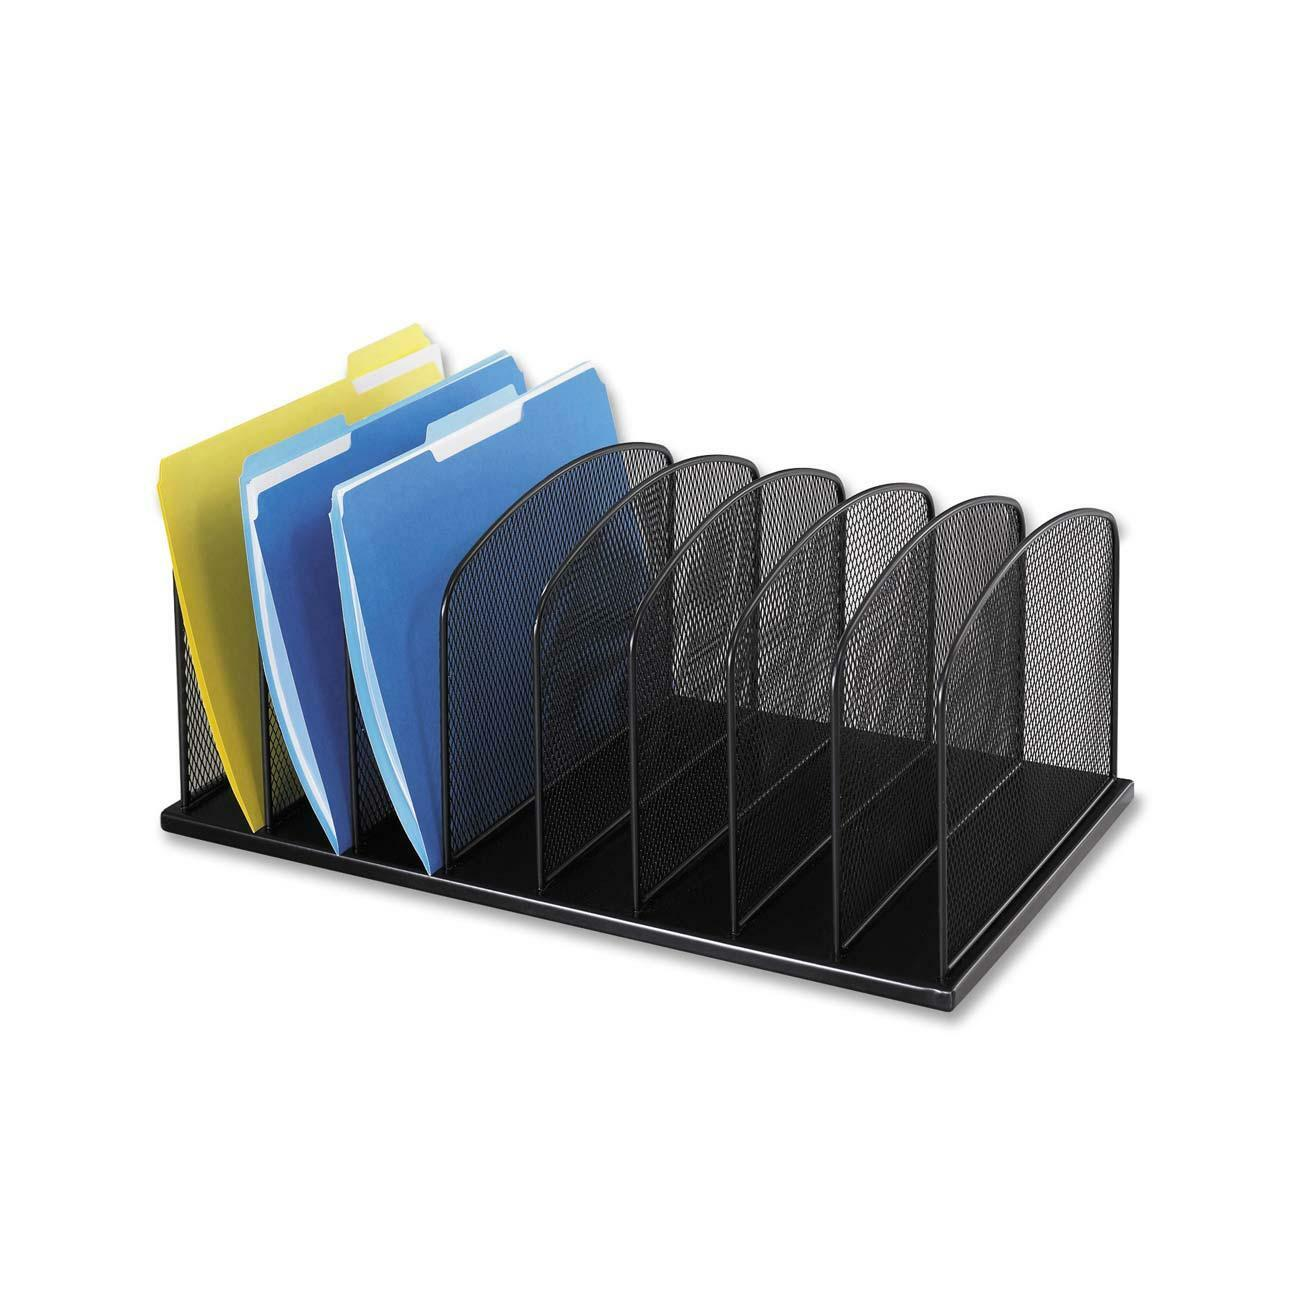 Mesh Desk Organizers Help You Keep Hard To Organize Papers Folders And Binders Handy On Your Work Surface A Variety Of Arrangements Fit Individual